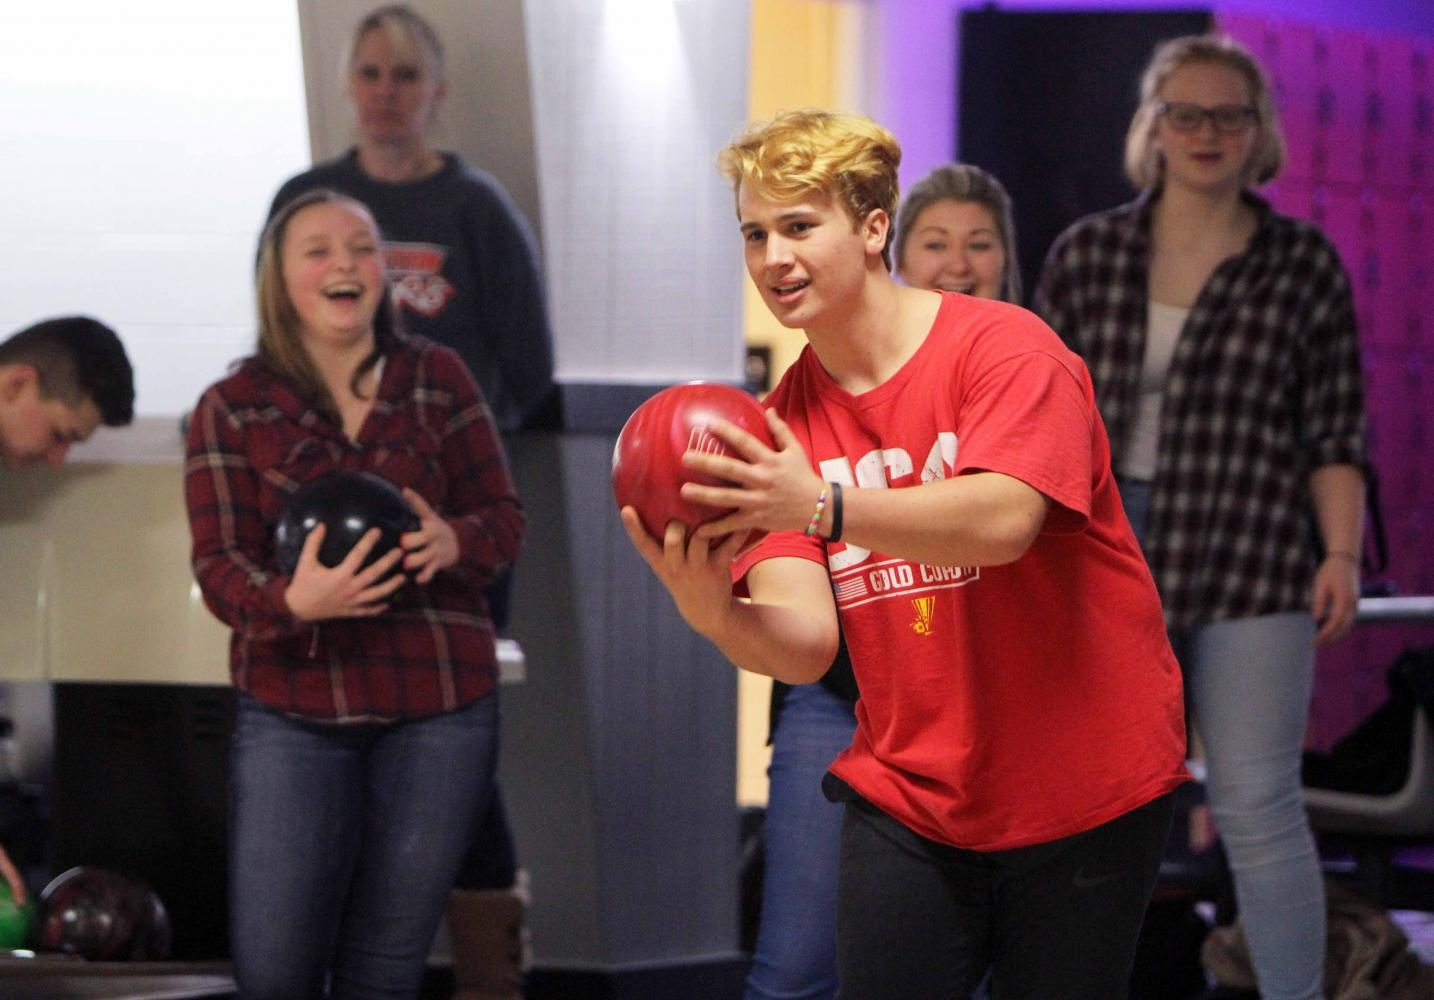 Bowling team establishes goals early in season